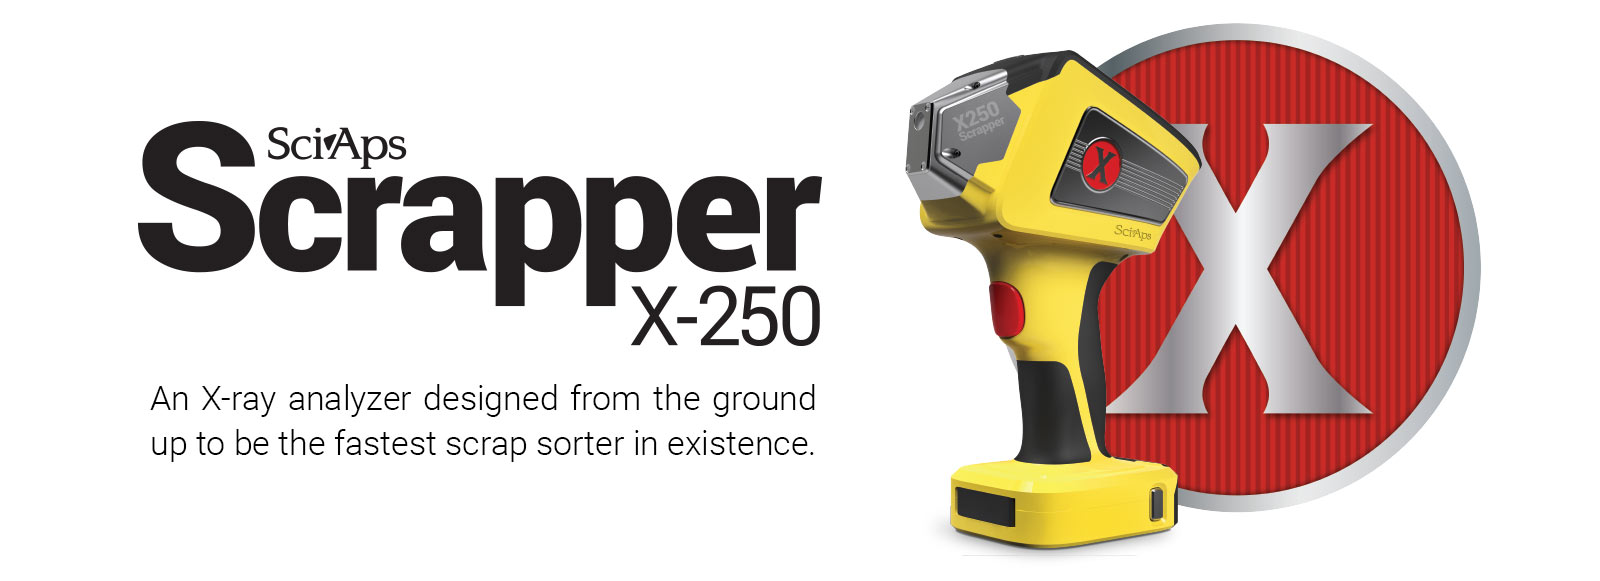 Scrapper X-250 - An X-ray Analyzer designed from the ground up to be the fastest scrap sorter in existence.